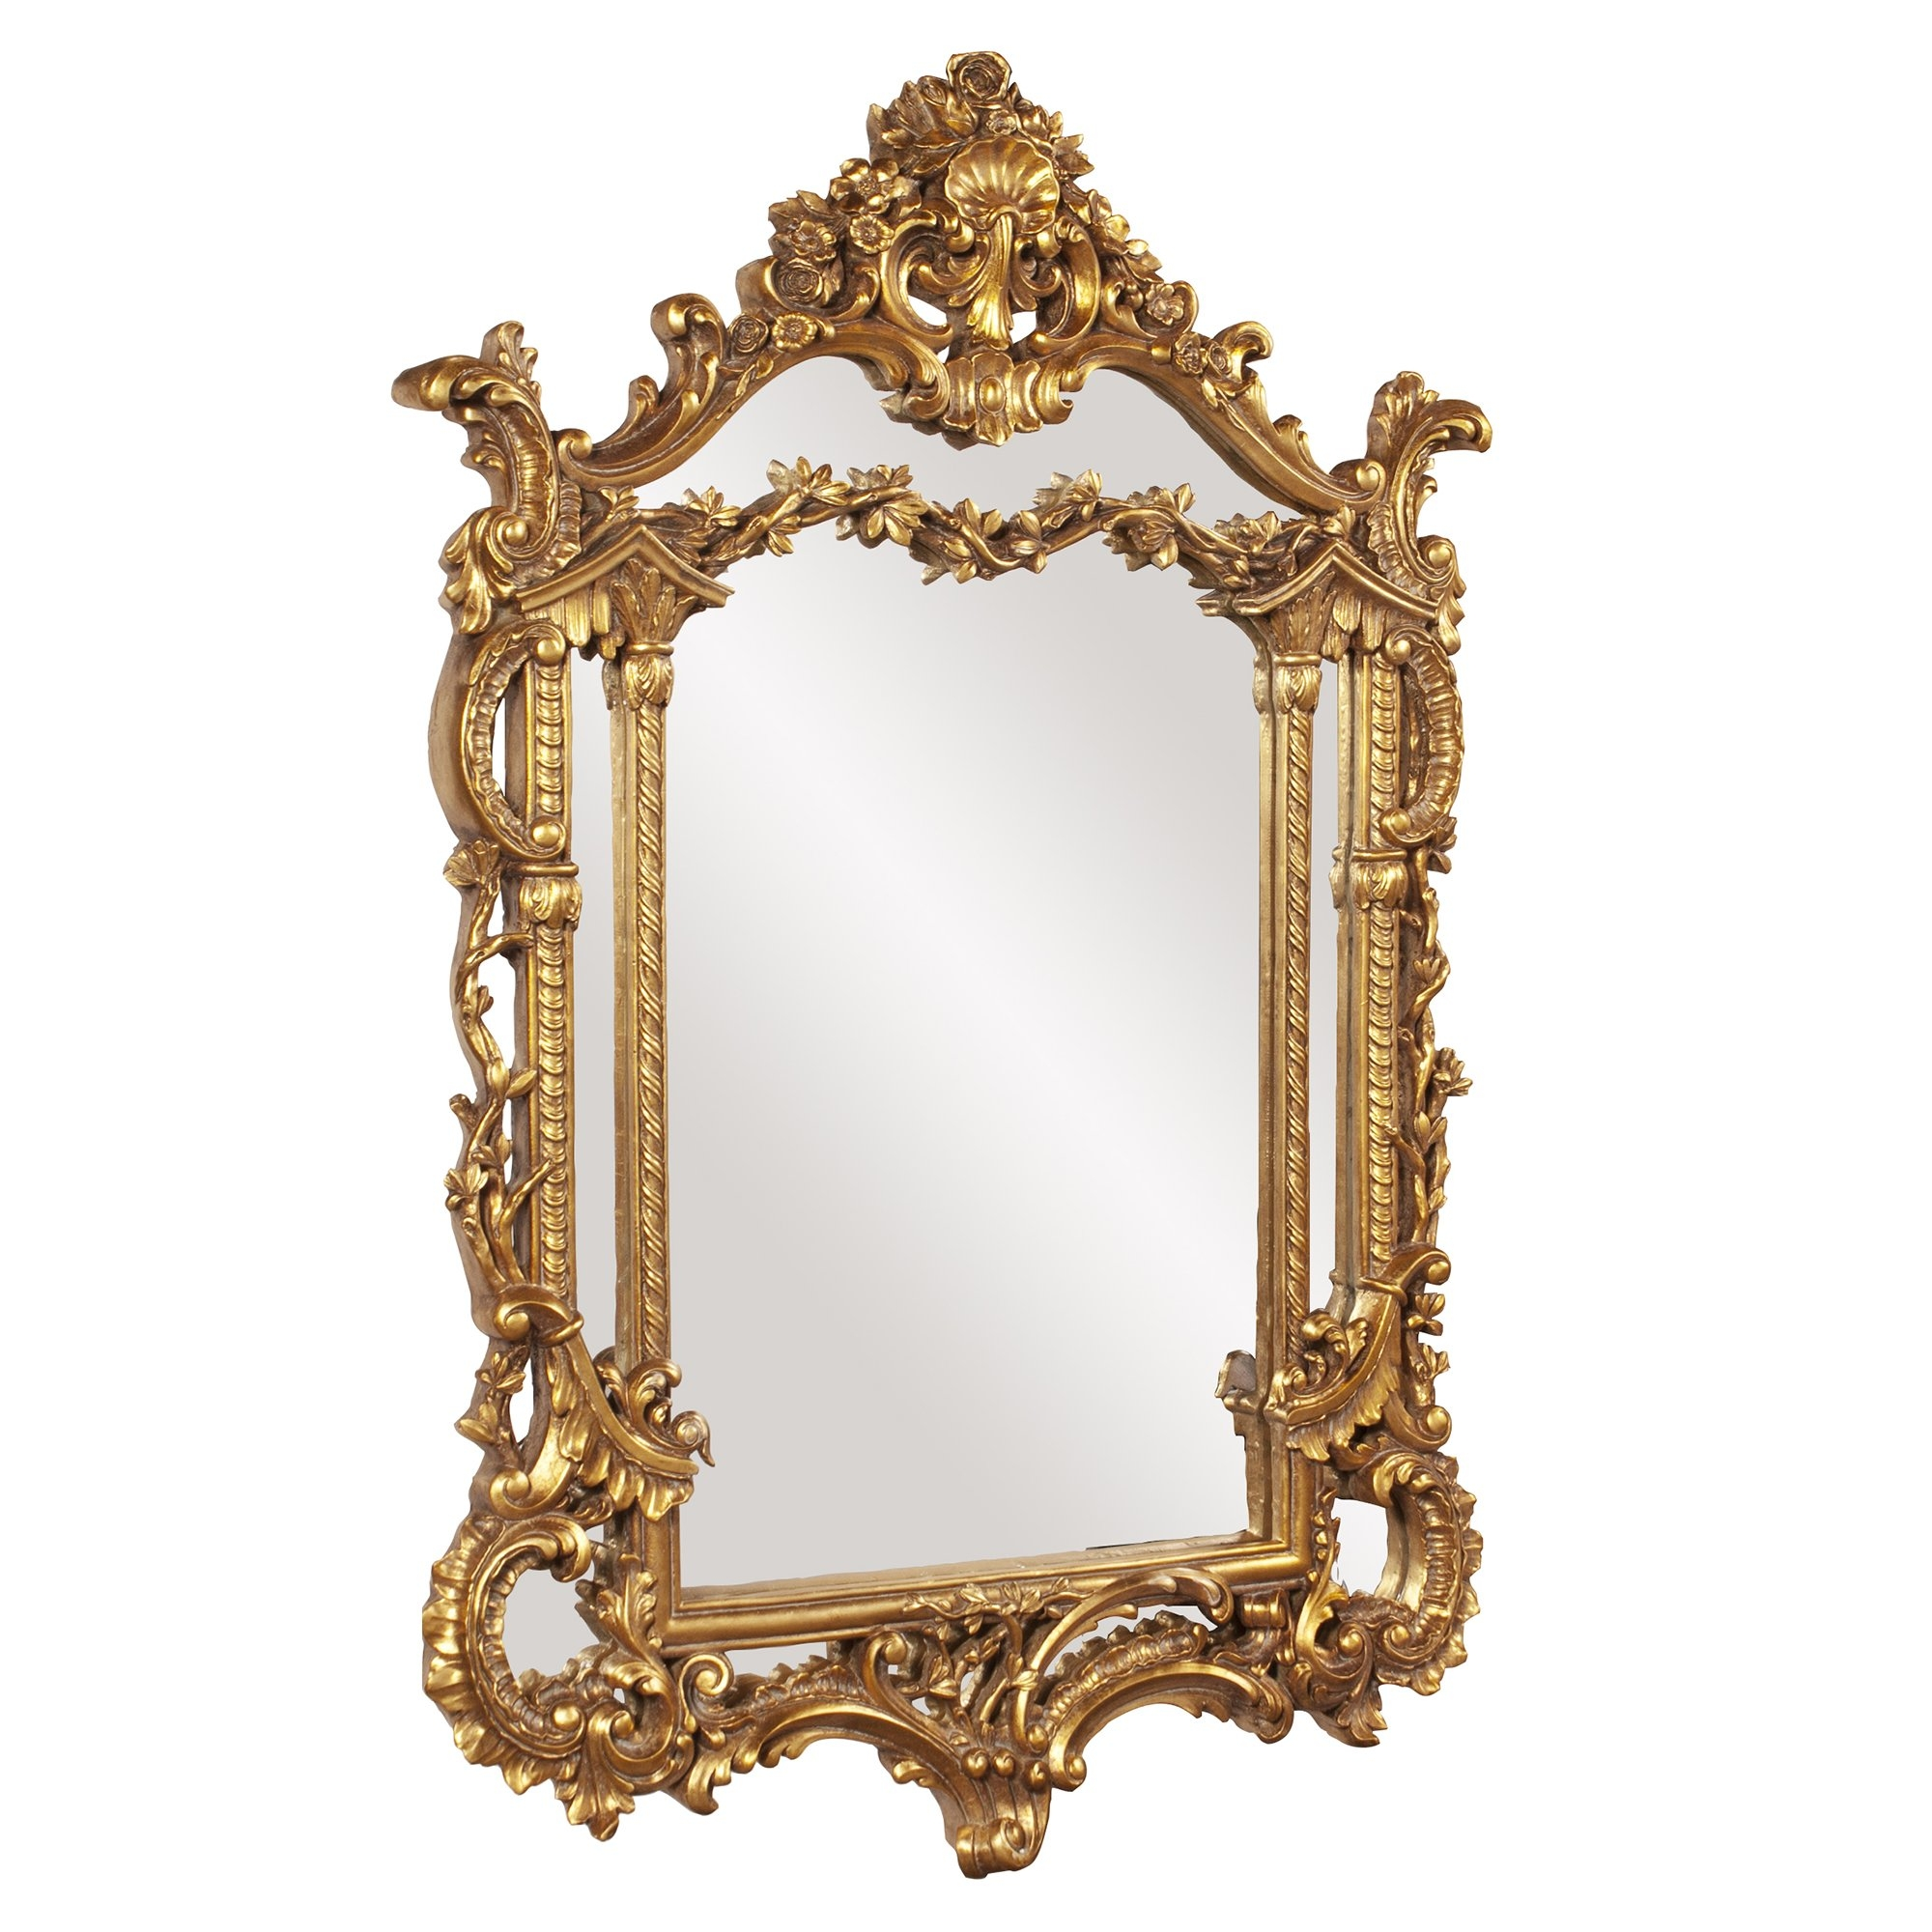 Astoria Grand Antique Gold Vertical Baroque Mirror Reviews Wayfair Intended For Modern Baroque Mirror (Image 3 of 15)